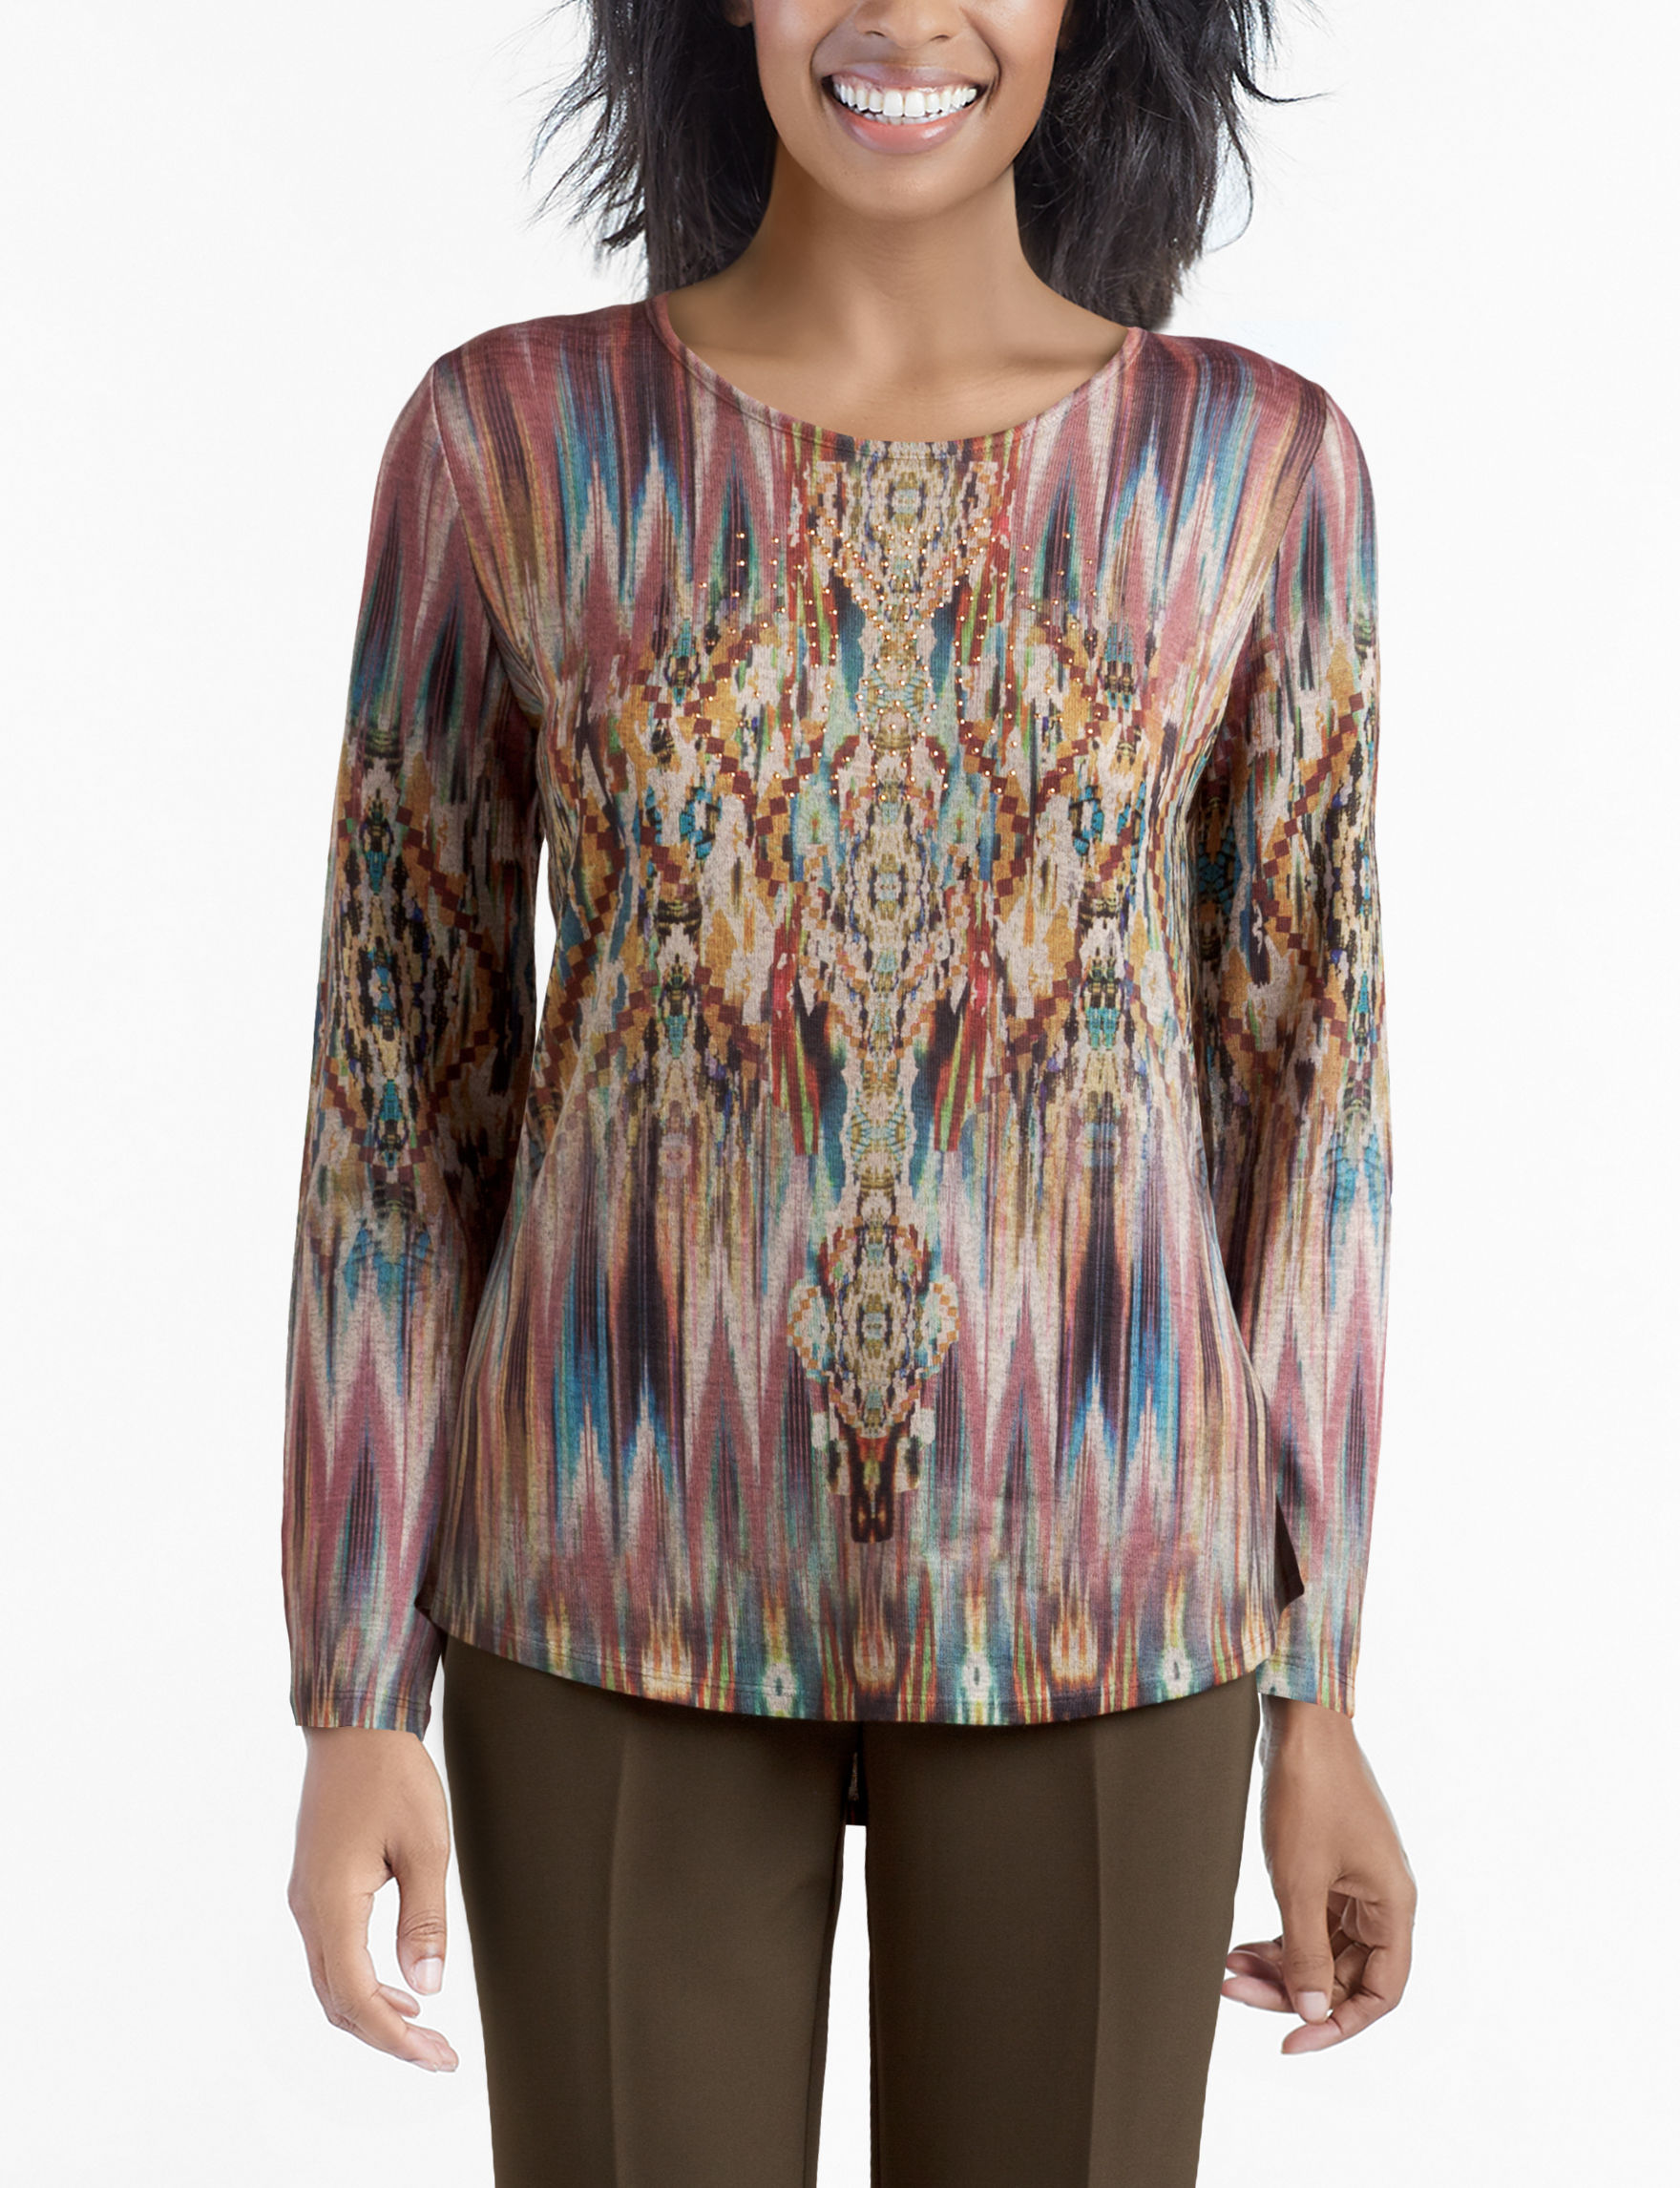 Energe Brown Multi Shirts & Blouses